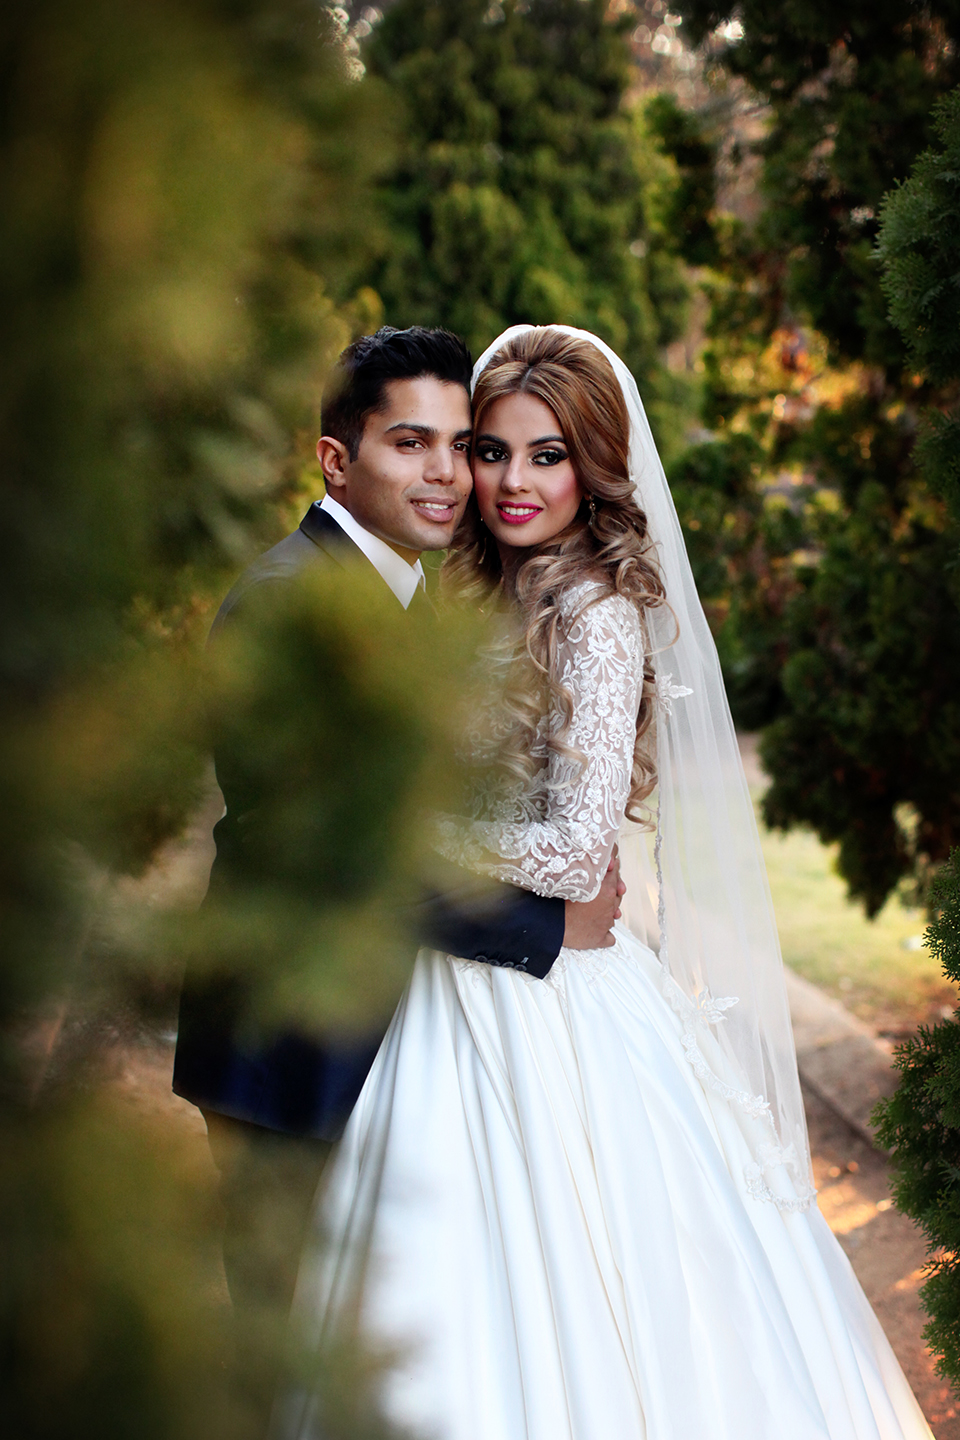 dubai-wedding-photographers-best-wedding-photographers-in-the-world-estilo-photography-stylish-wedding-photography-velmore-wedding-muslim-wedding-johannesburg-gauteng-photographers-020.jpg